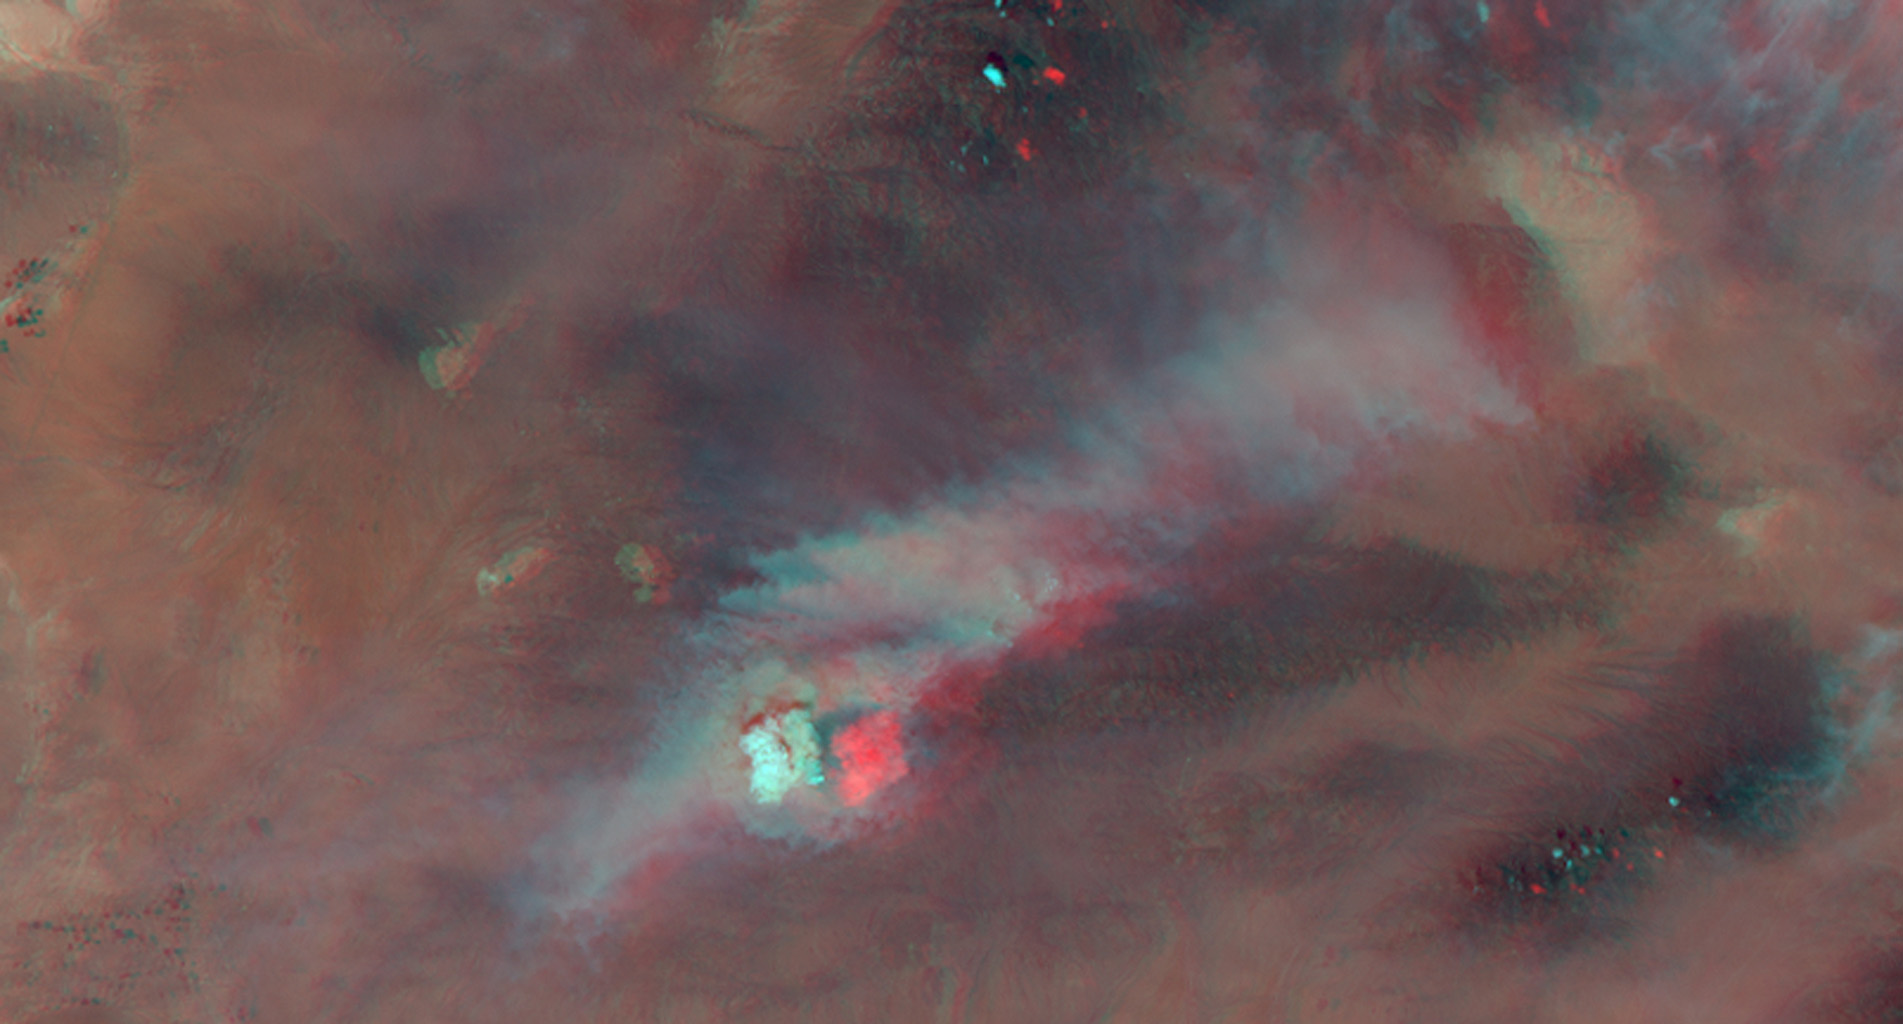 NASA's Terra satellite passed over the Silver Fire in New Mexico June 12, 2013. By combining information from different MISR cameras, scientists have produced a 3D image of the smoke plume associated with the Silver Fire.